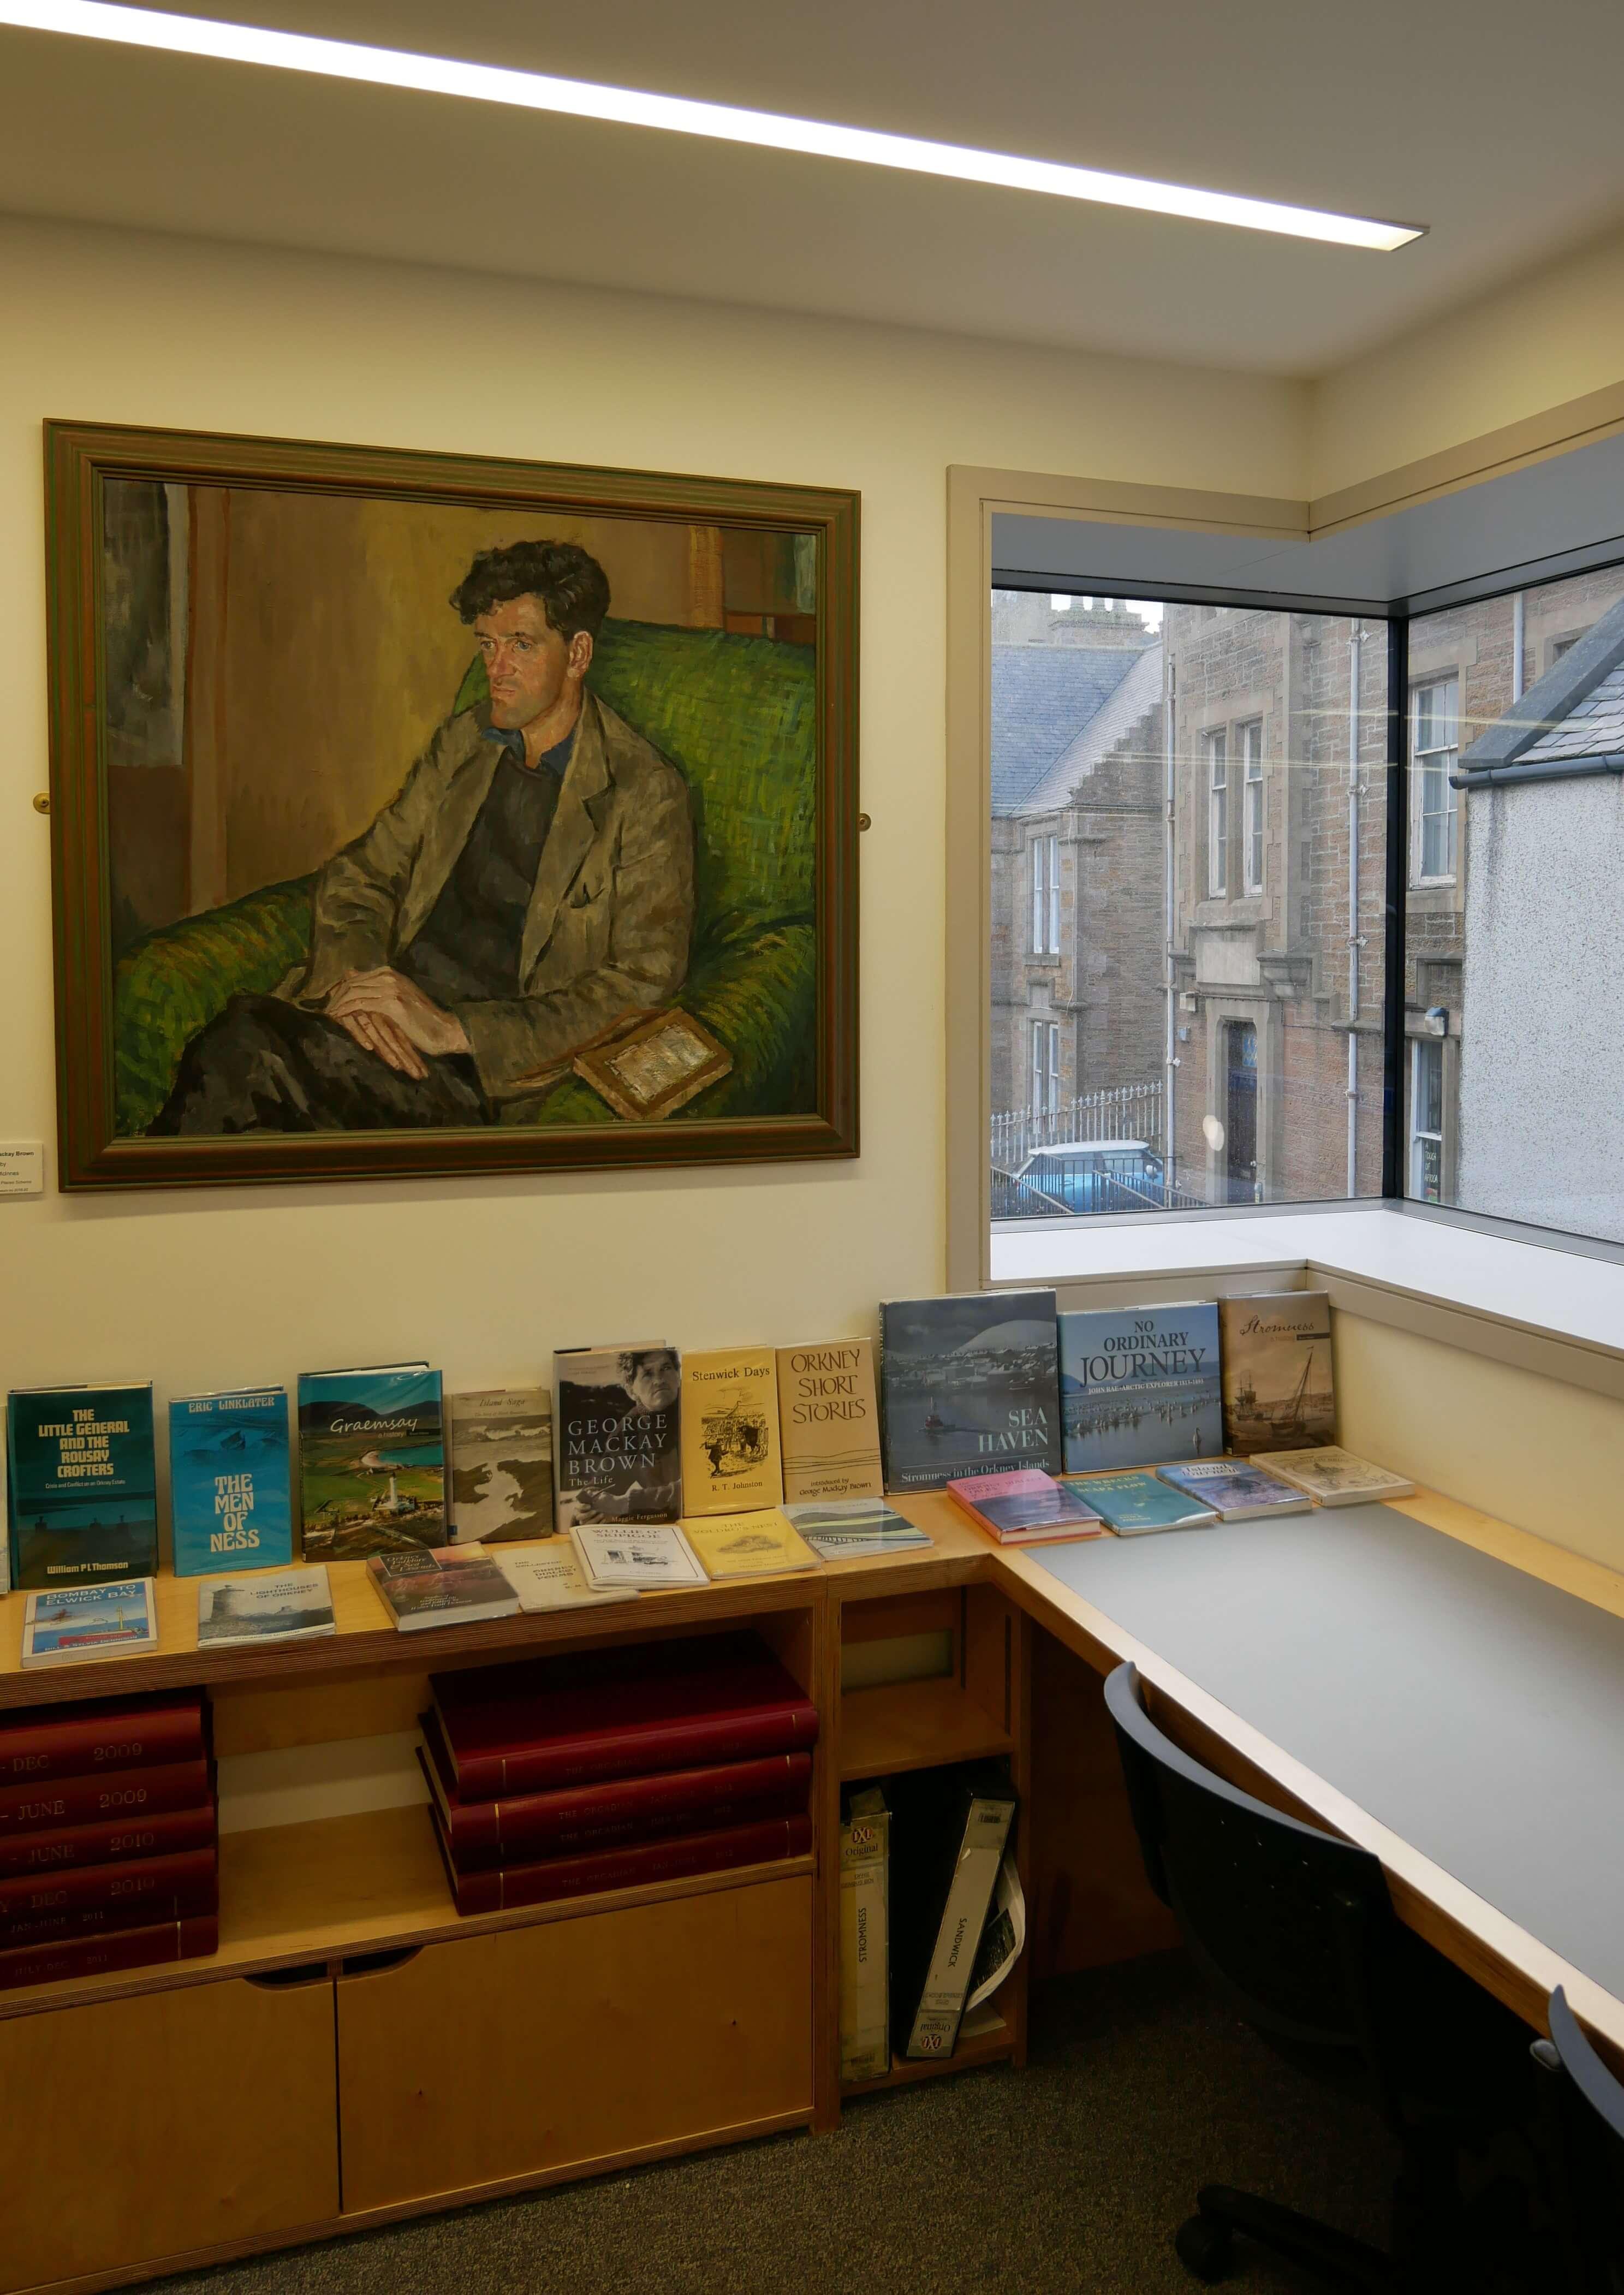 Orkney writer GMB in the Stromness Library, Orkney Islands, Scotland